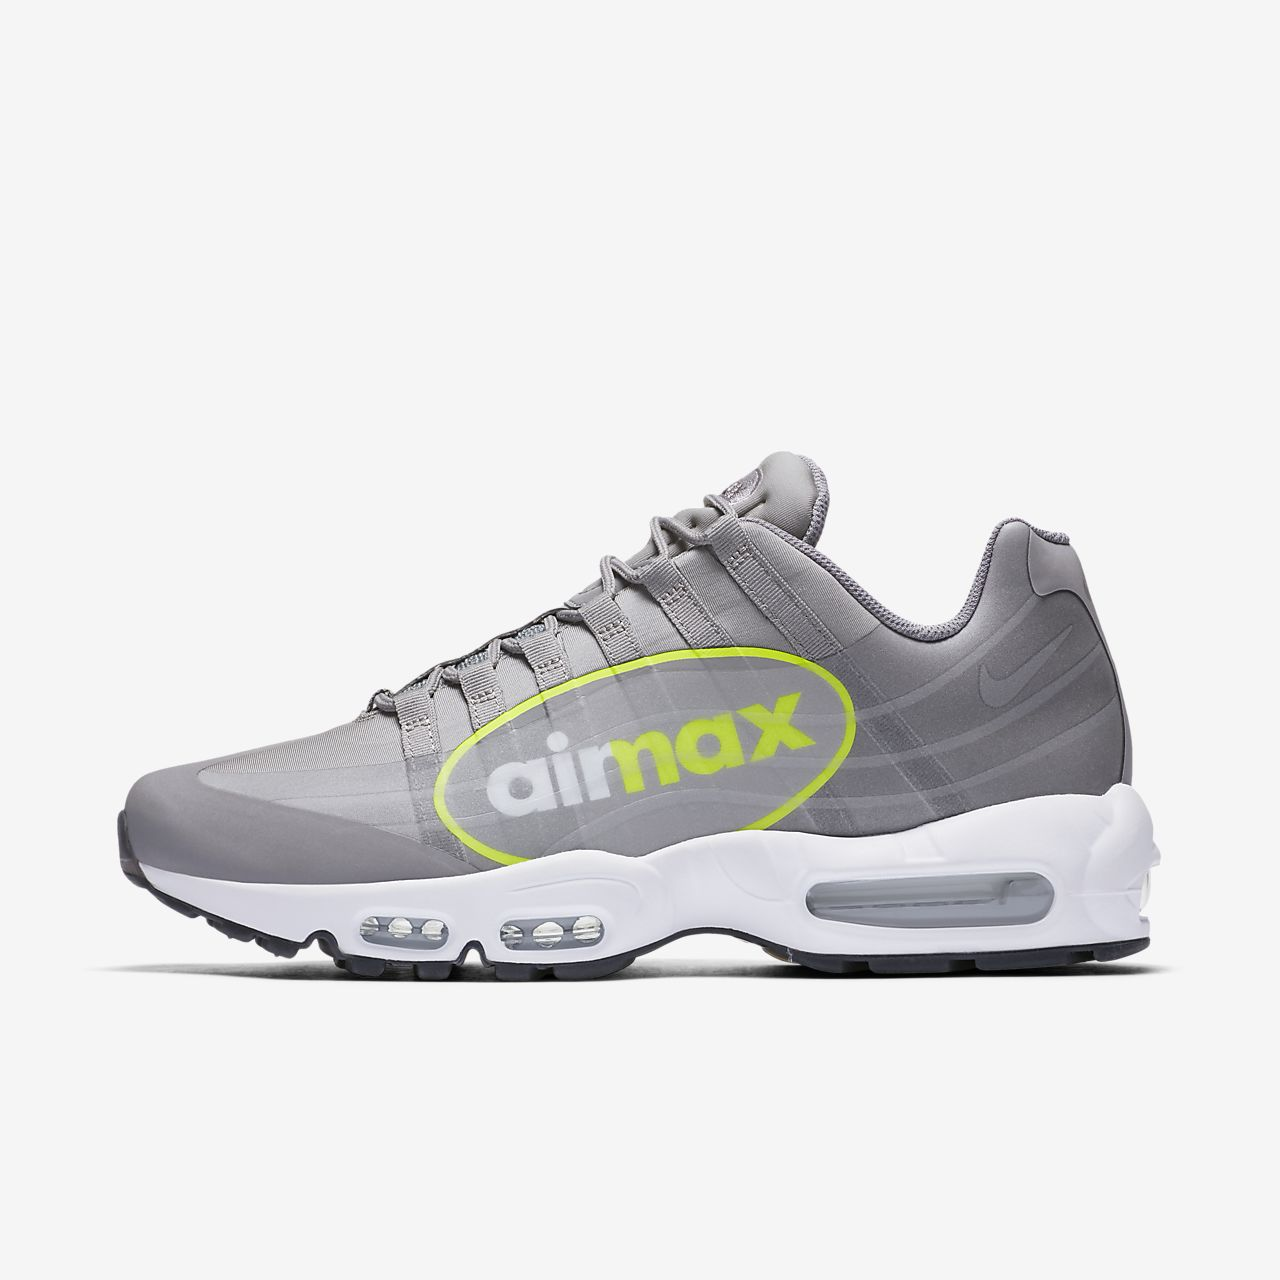 ... Chaussure Nike Air Max 95 NS GPX pour Homme